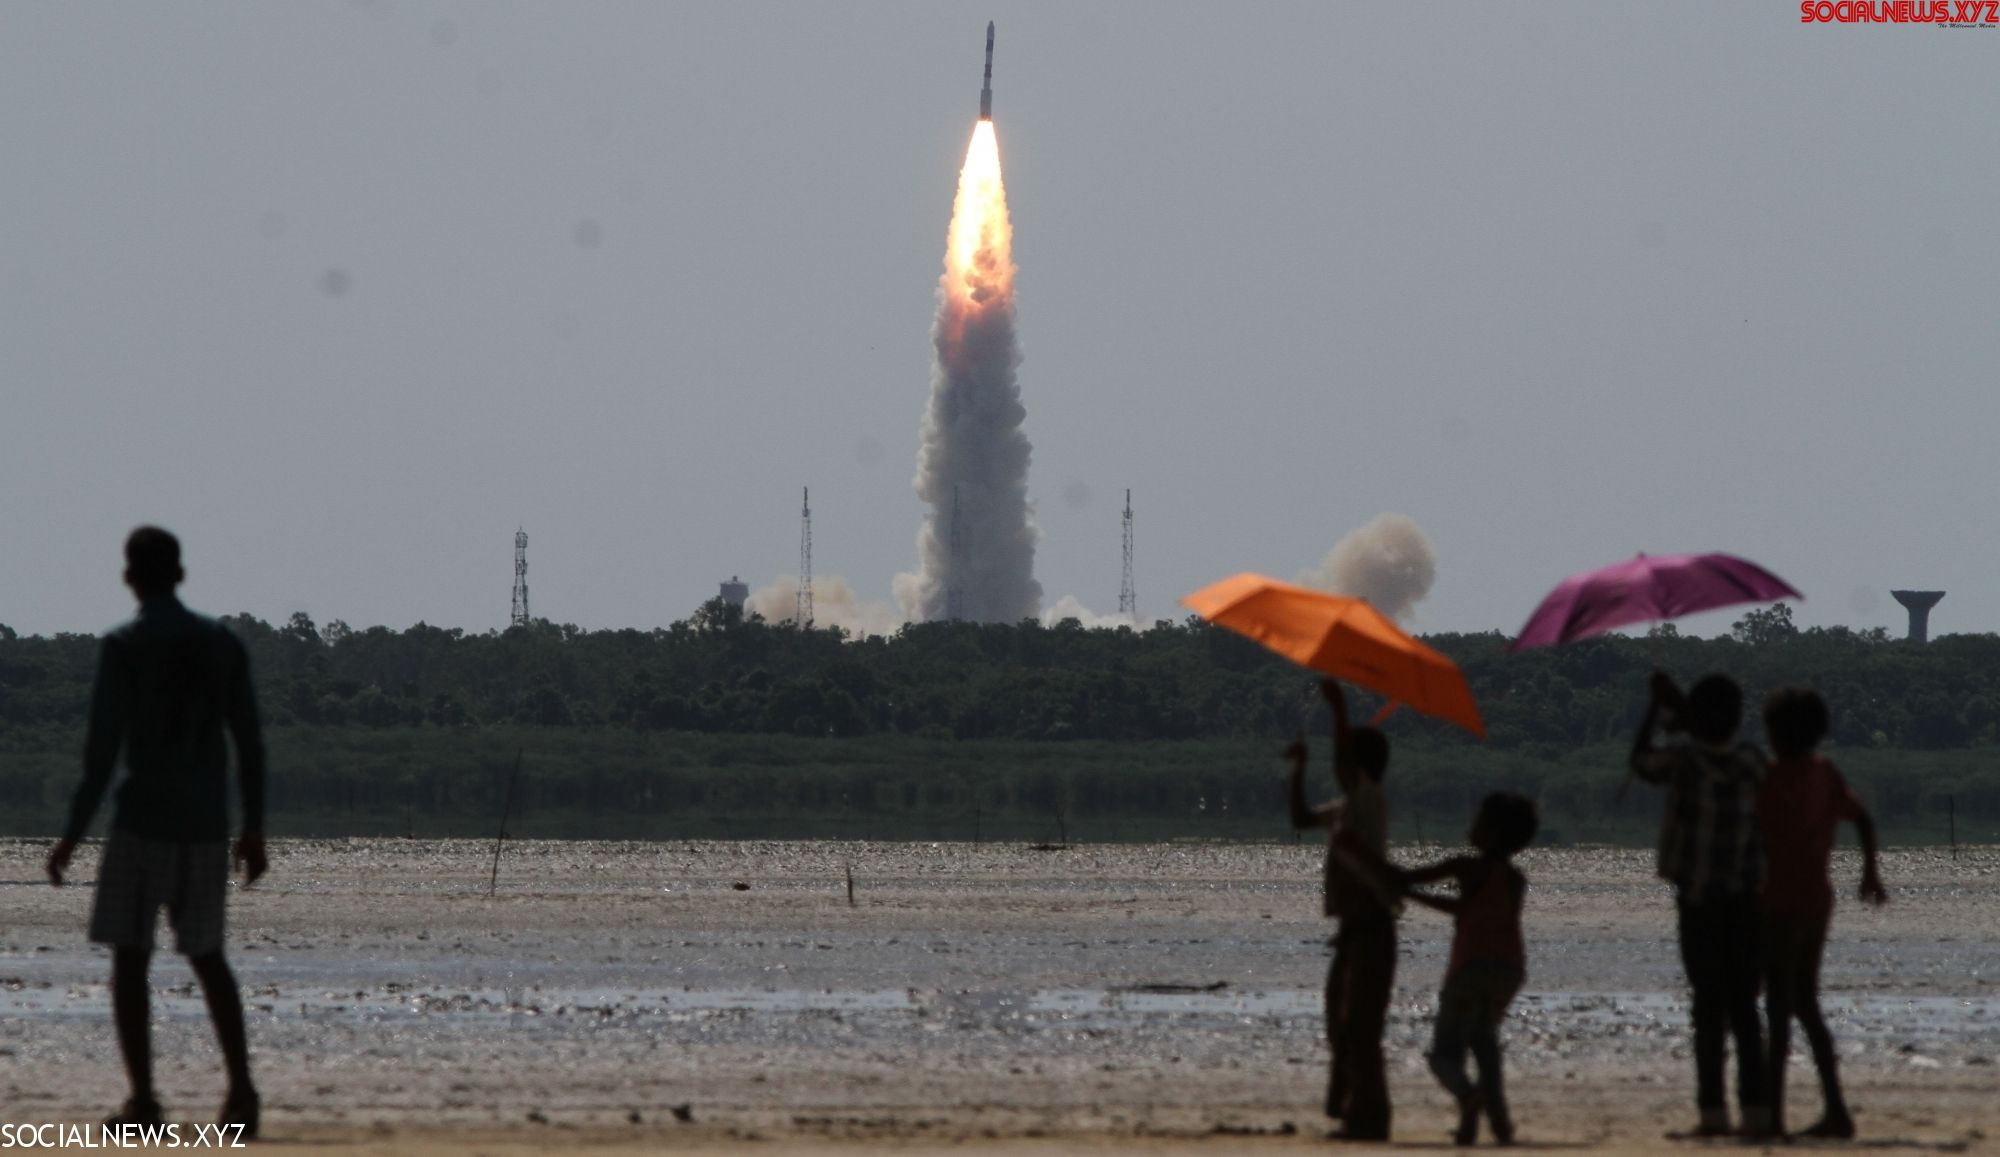 India to launch record 104 satellites next week - Social